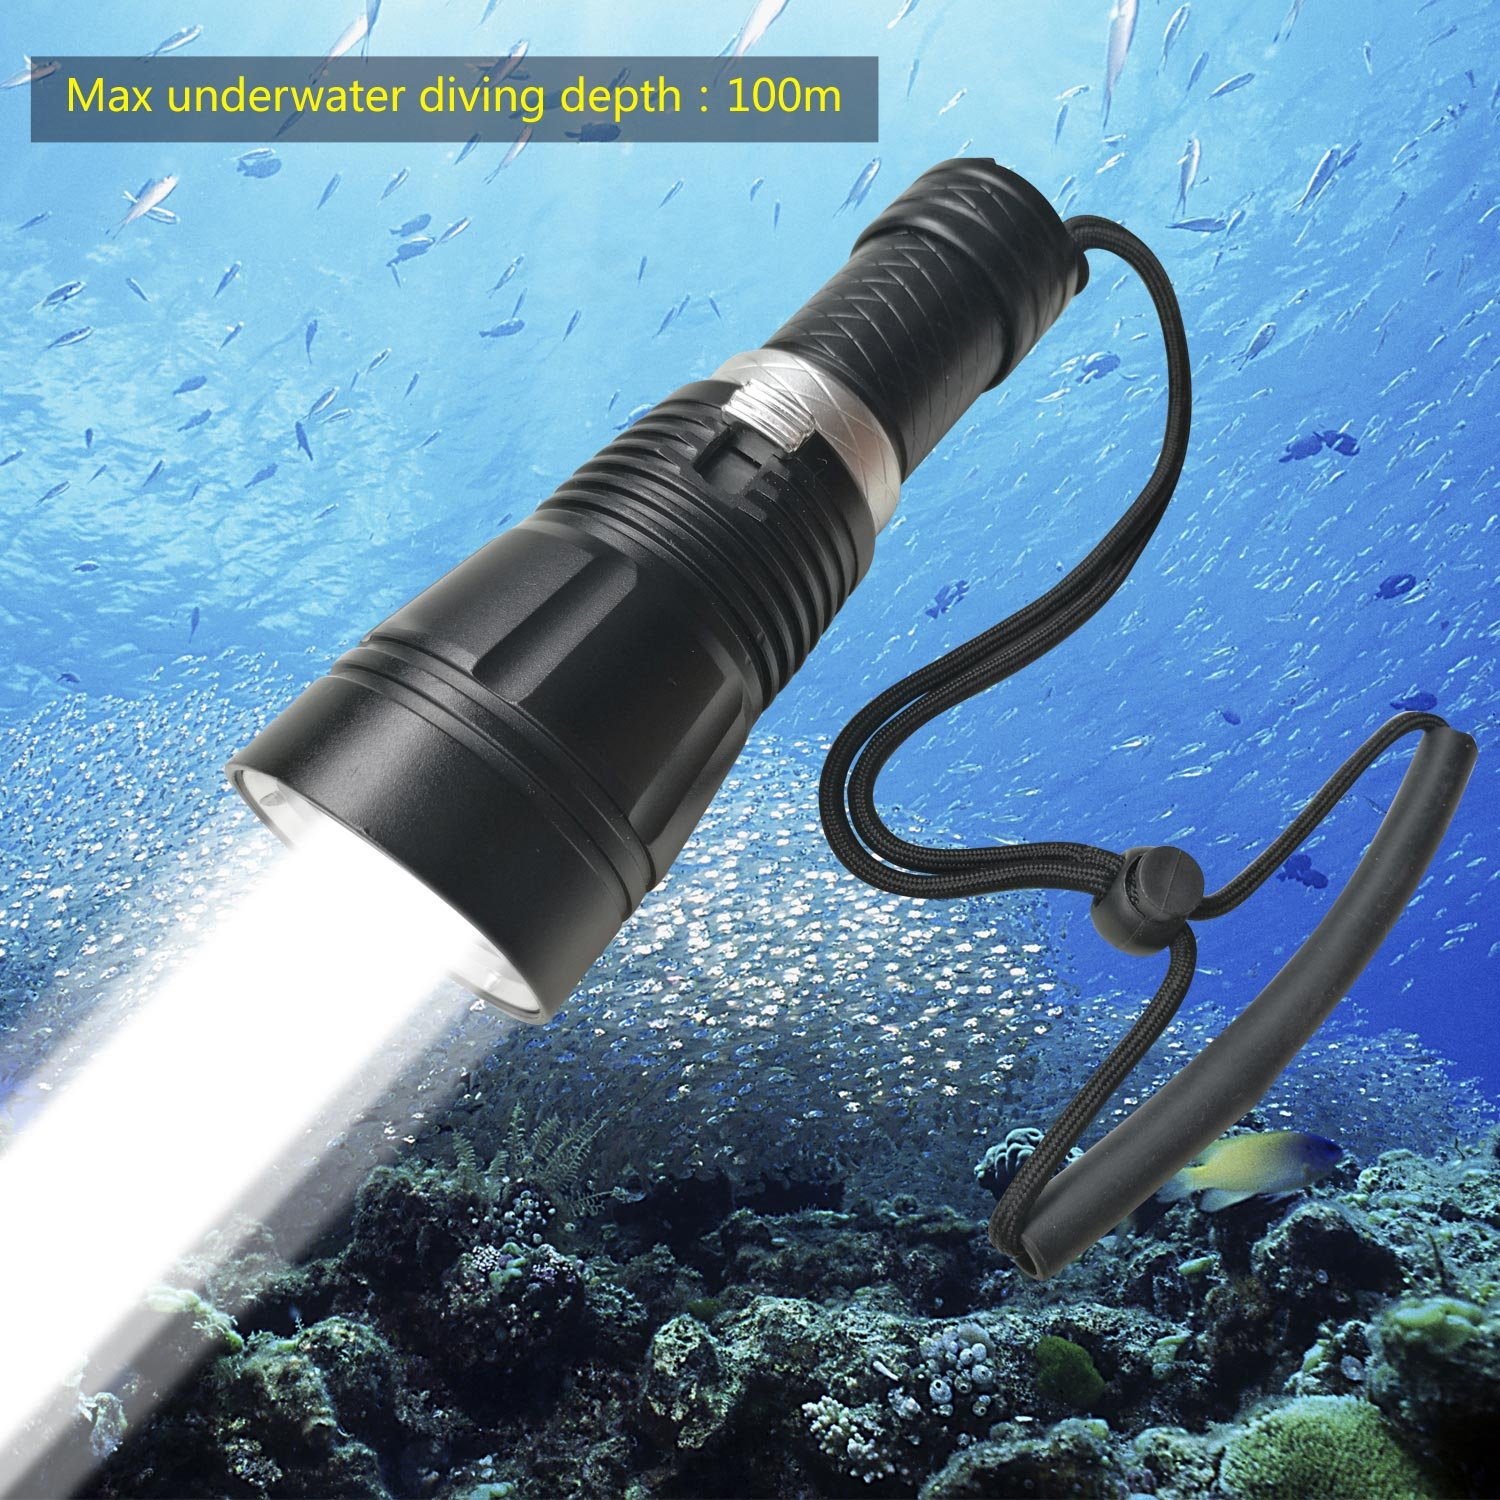 Goldengulf Professional 100M Depth Scuba Diving Flashlight Cree L2 LED 1800 Lumen Torch Waterproof Underwater Light Lamp Rechargeable 18650 Battery and Charger Included/Gift Box Package (160, 60) by Goldengulf